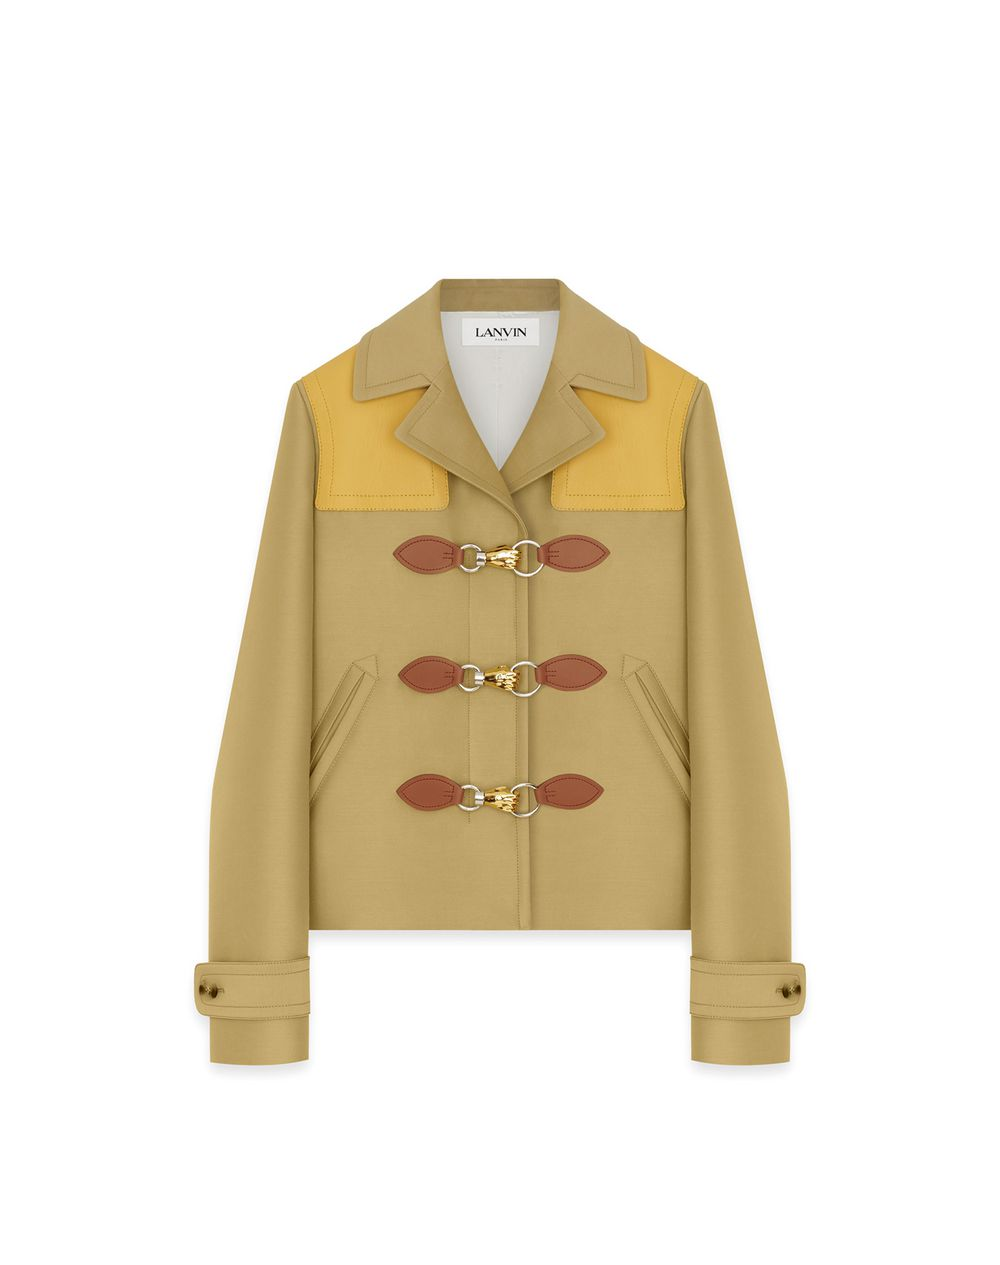 HAND HOOK MILITARY JACKET - Lanvin